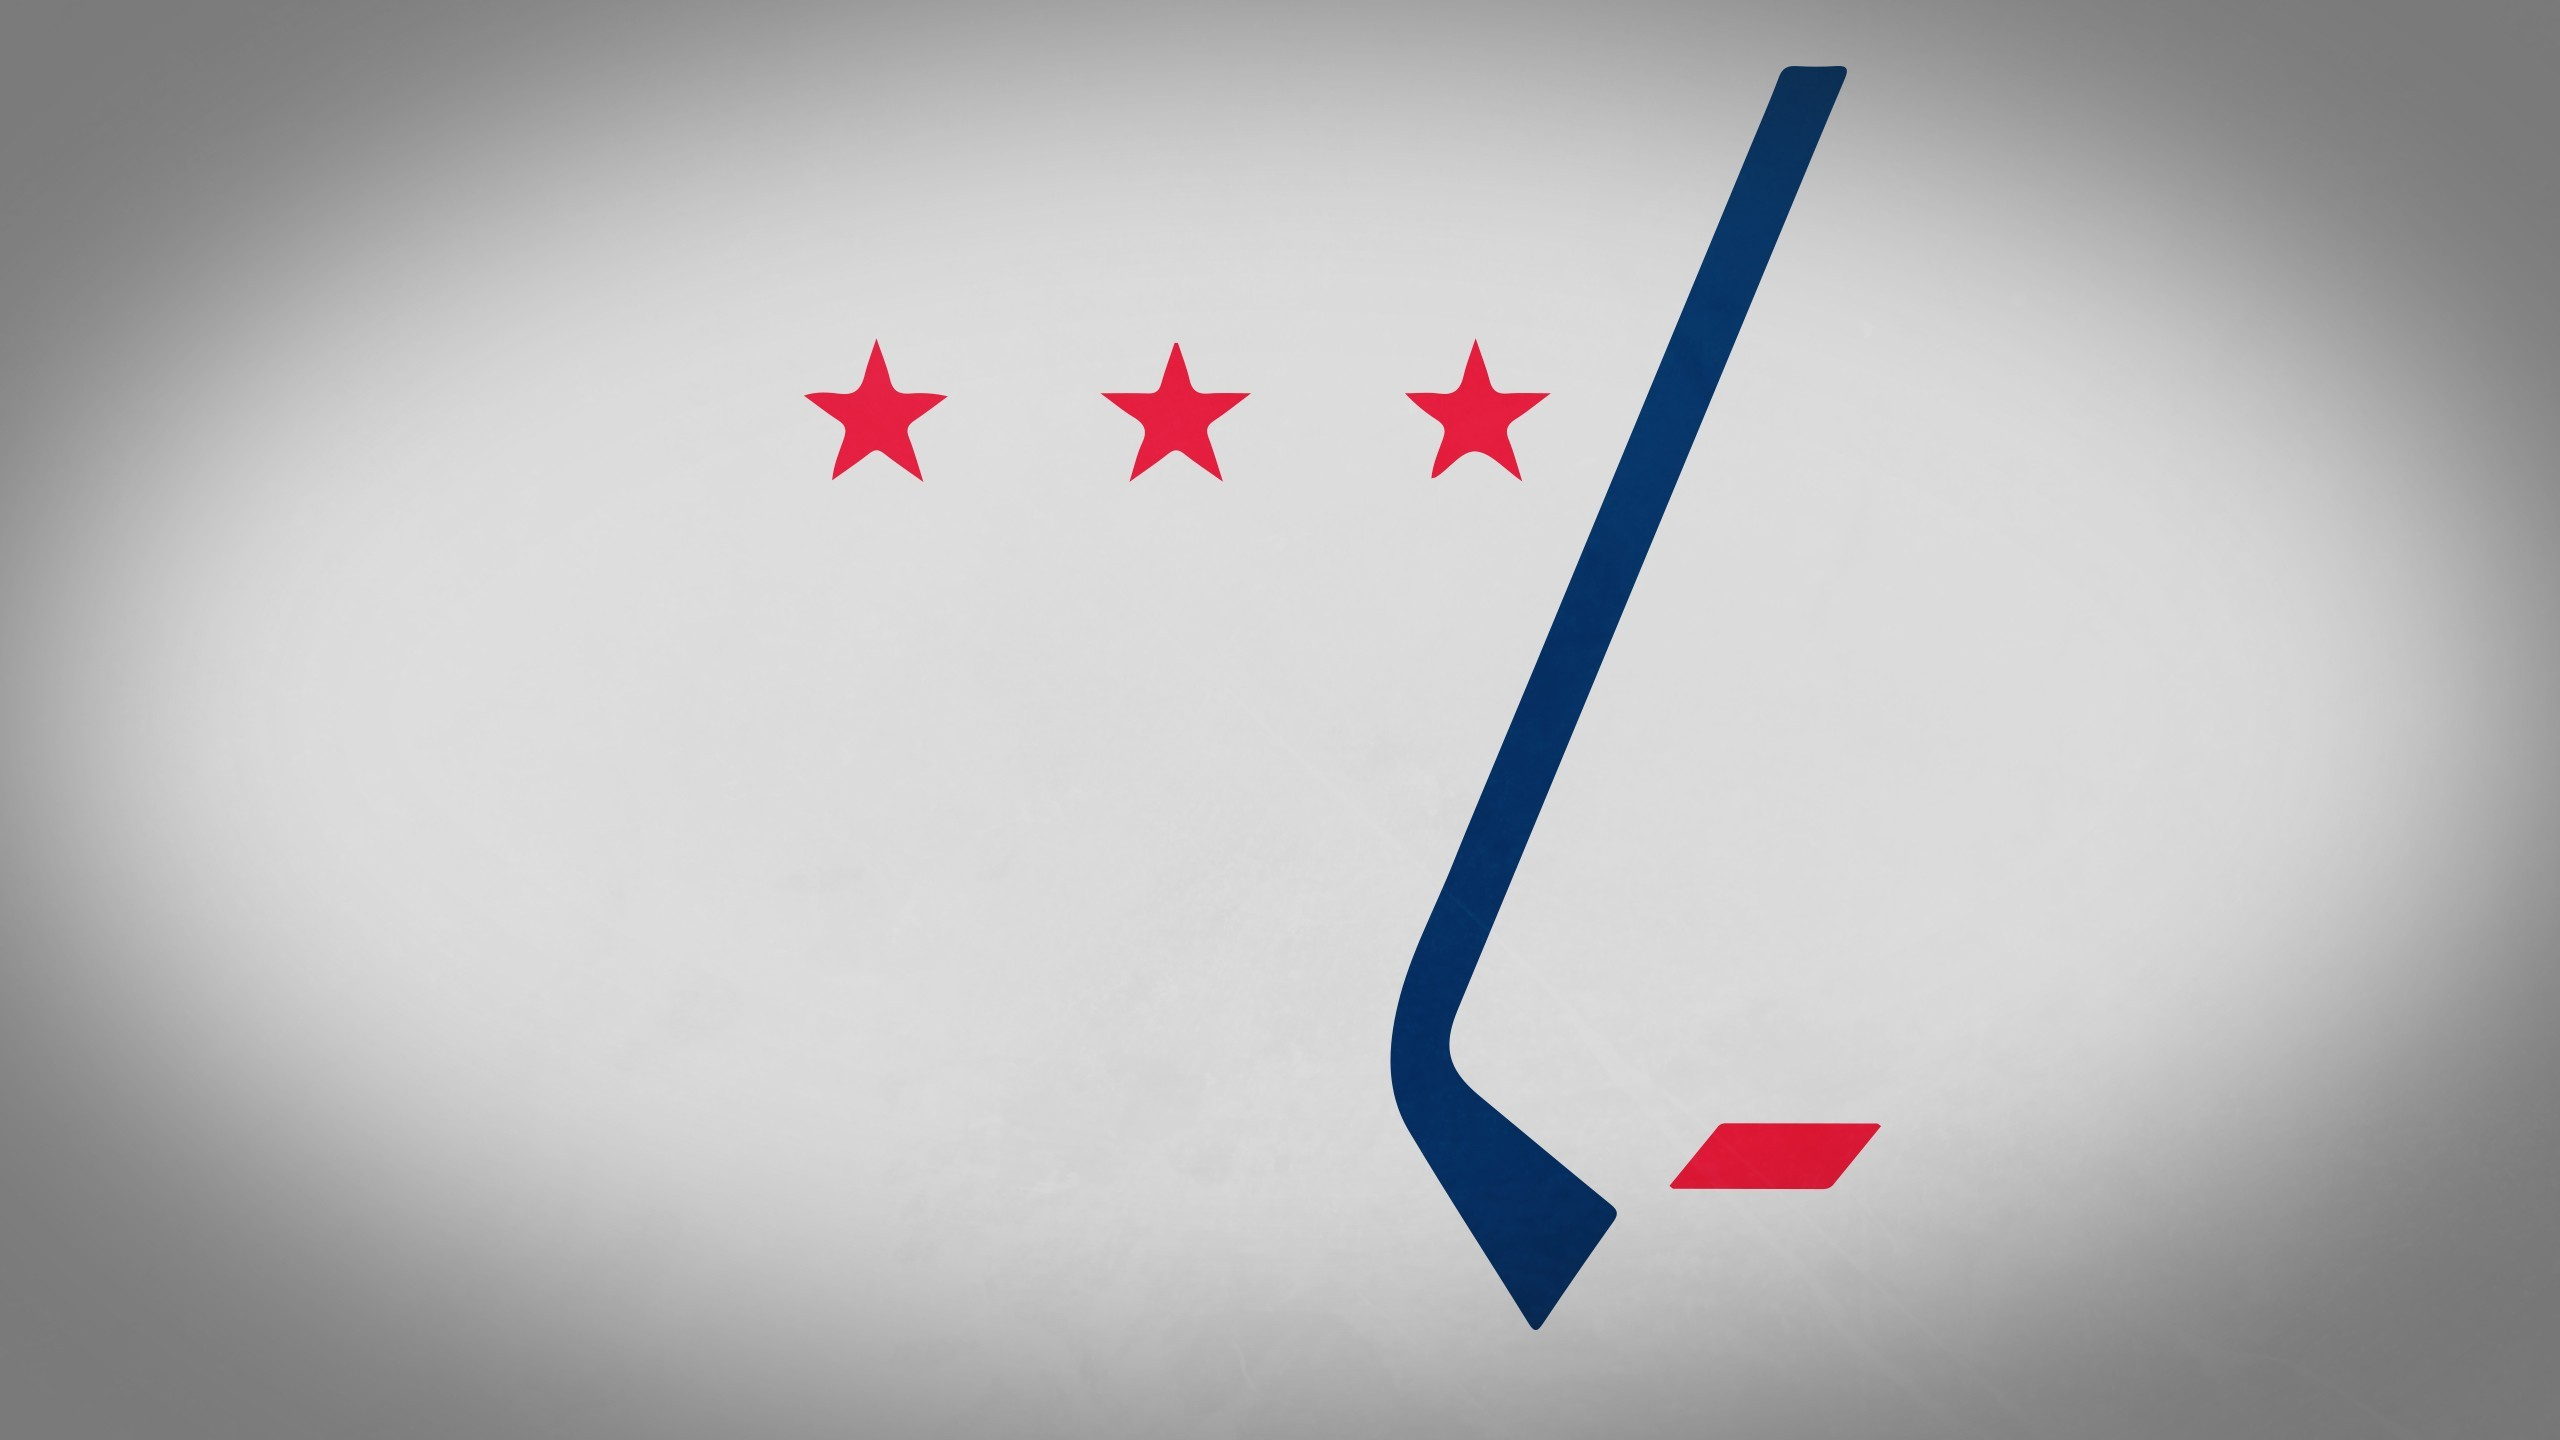 2560x1440 NHL Washington Capitals Logo Gray wallpaper HD. Free desktop .